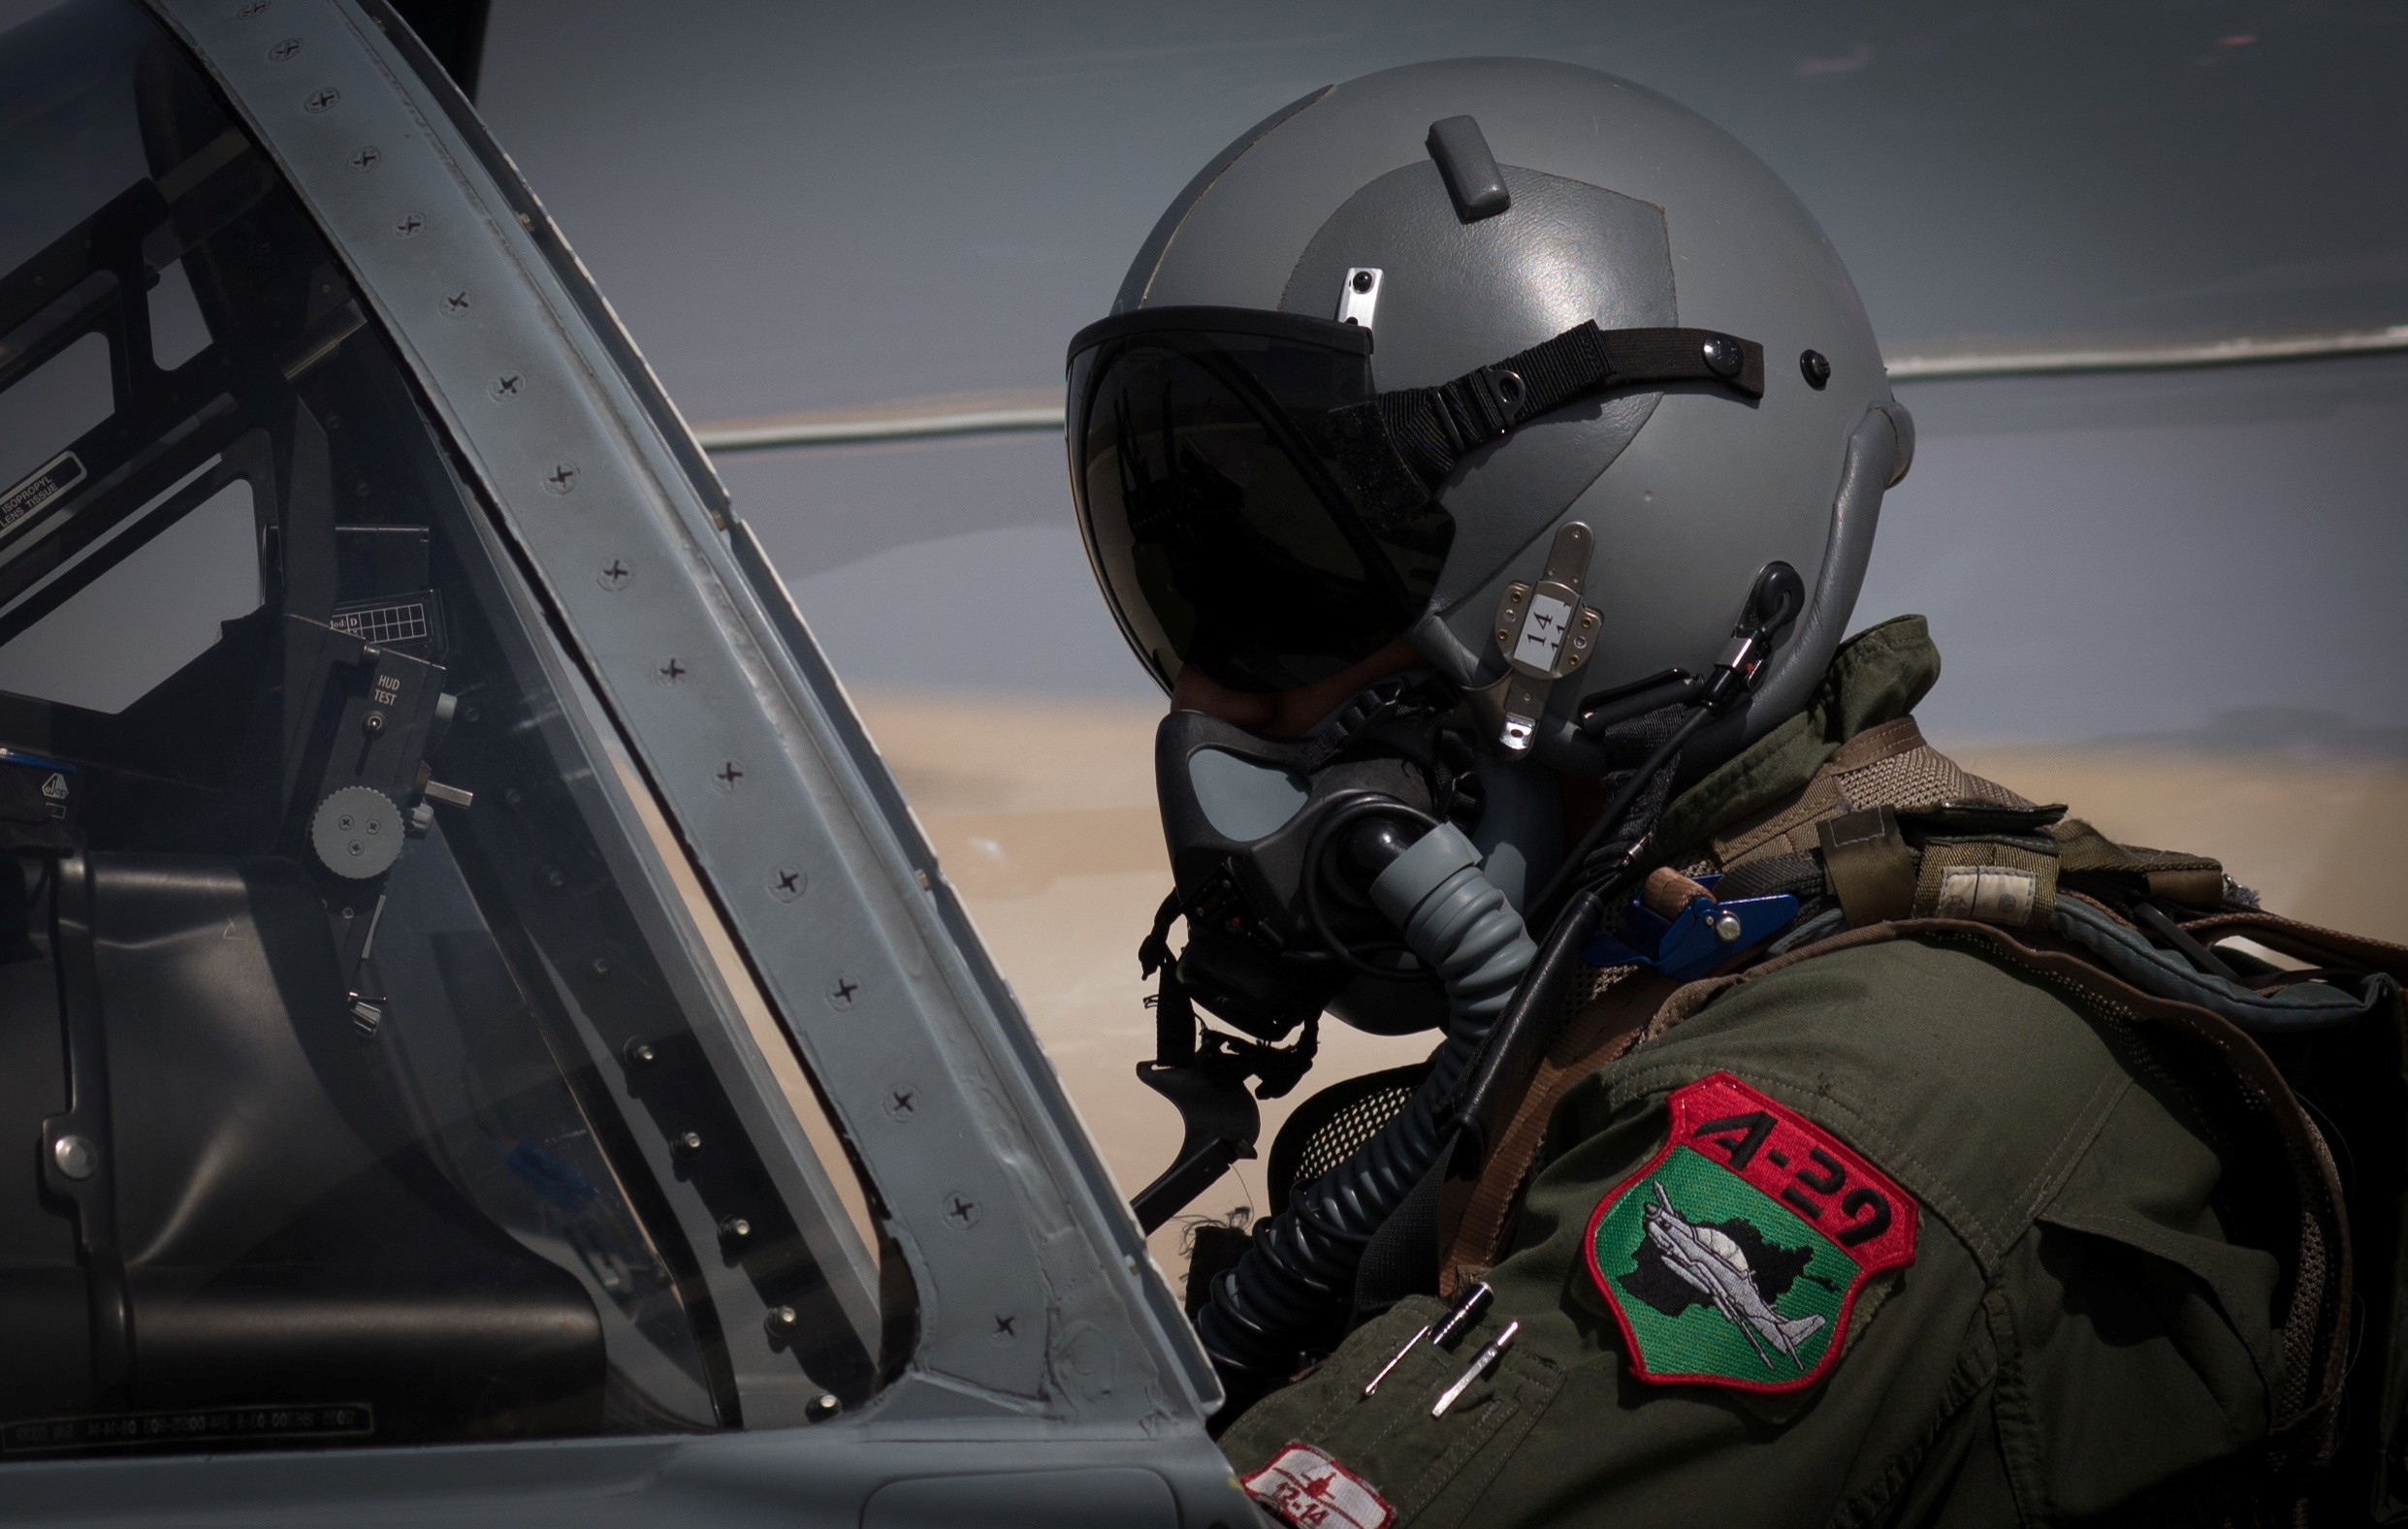 An Afghan A-29 pilot prepared for flight in the cockpit of his aircraft, at Kandahar Airfield, Afghanistan September 10, 2017. Picture taken Septembeer 10, 2017. U.S. Air Force/Staff Sgt. Alexander W. Riedel/Handout via REUTERS